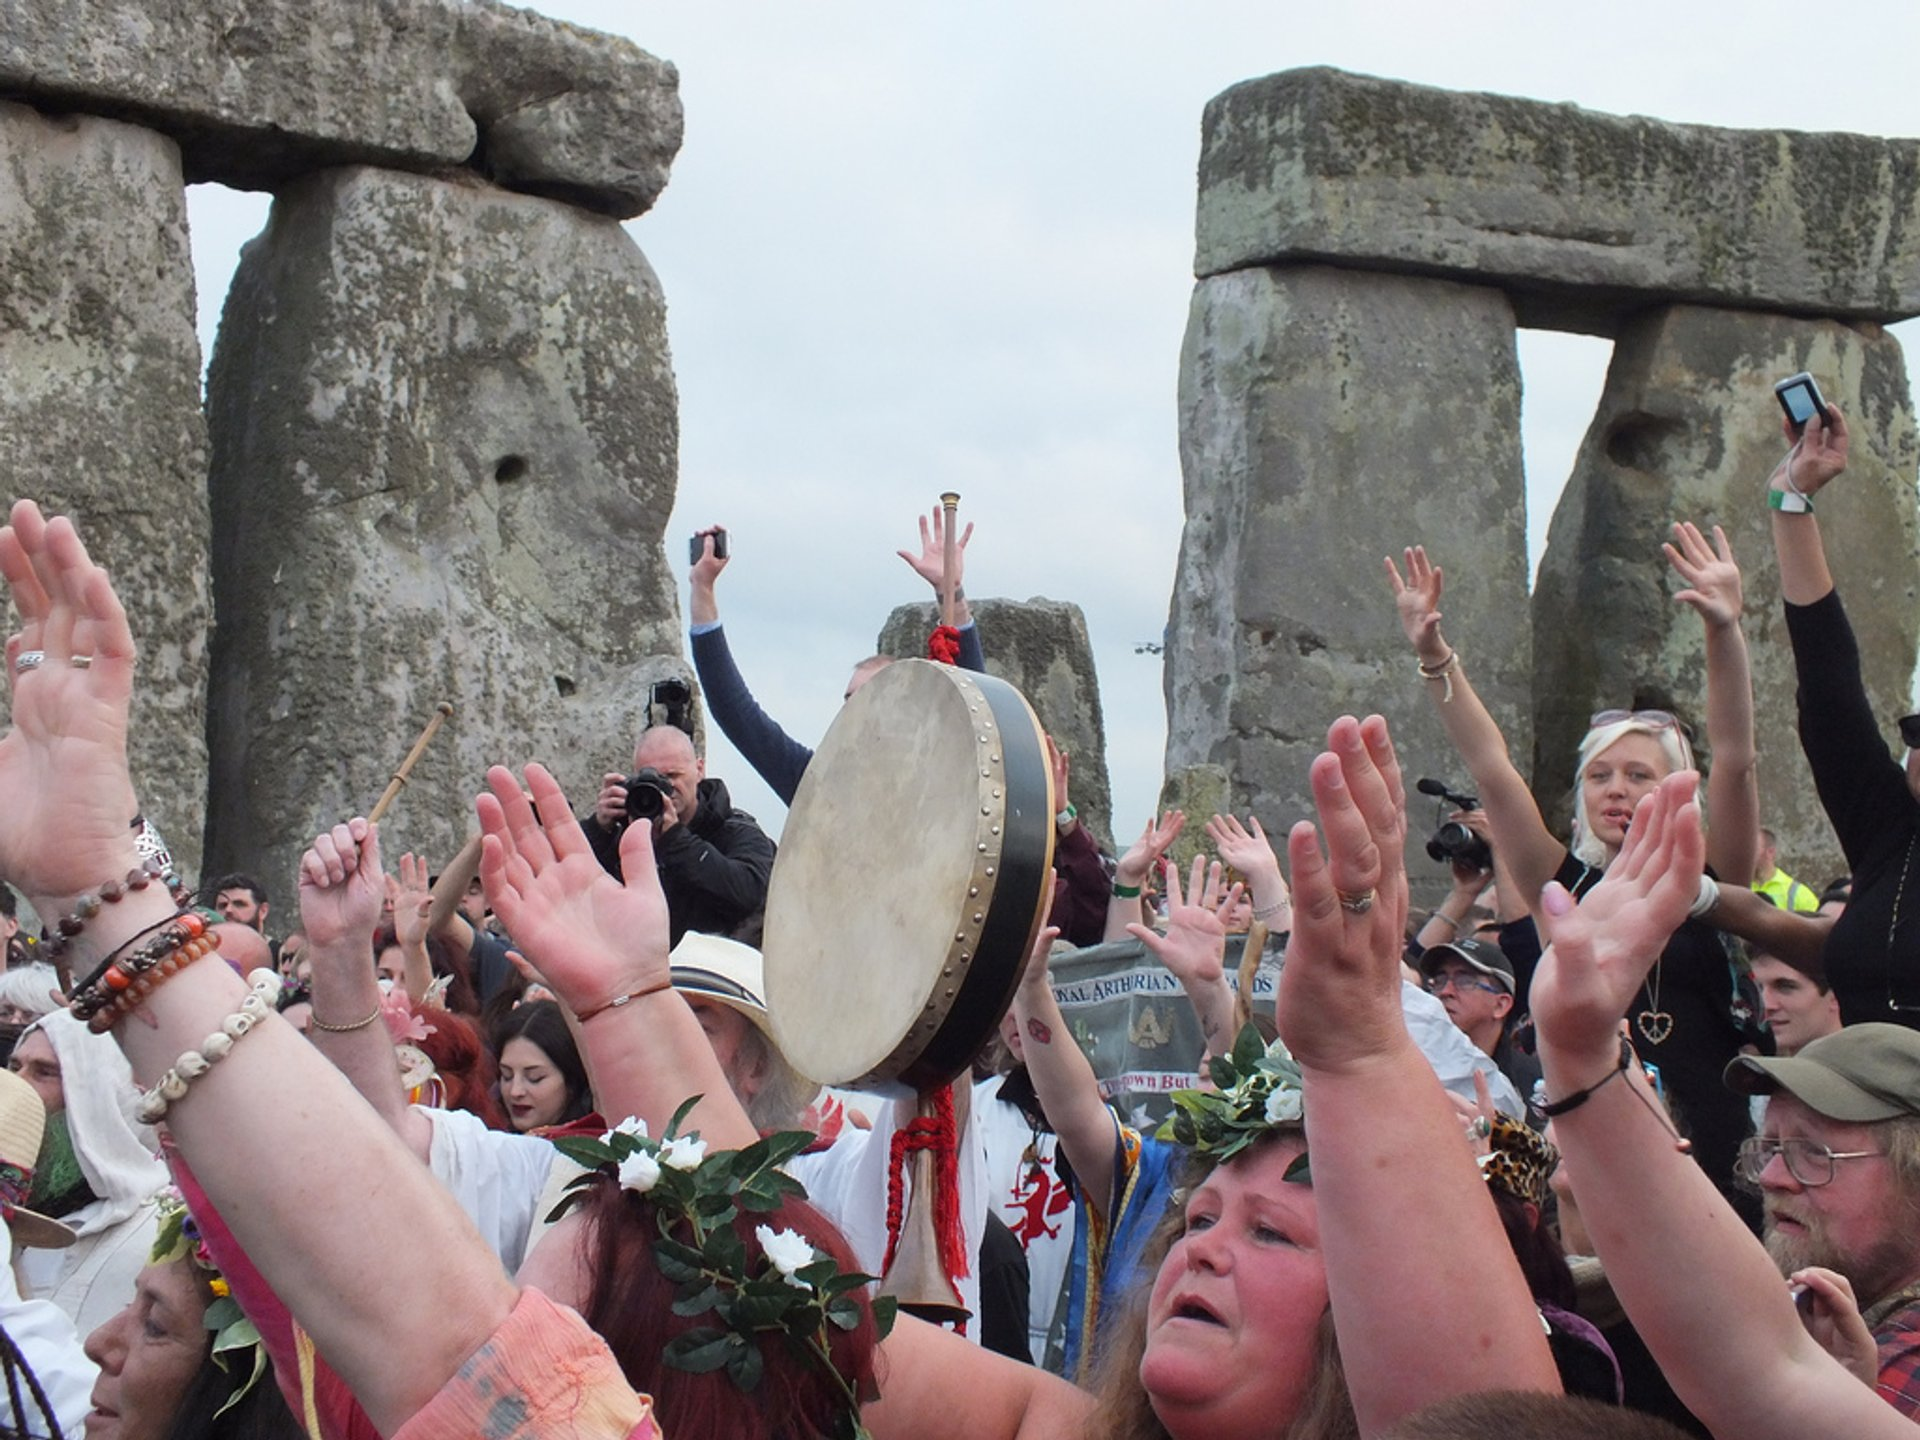 Stonehenge: Spring Equinox, Summer Solstice, Autumn Equinox, and Winter Solstice in England - Best Season 2020